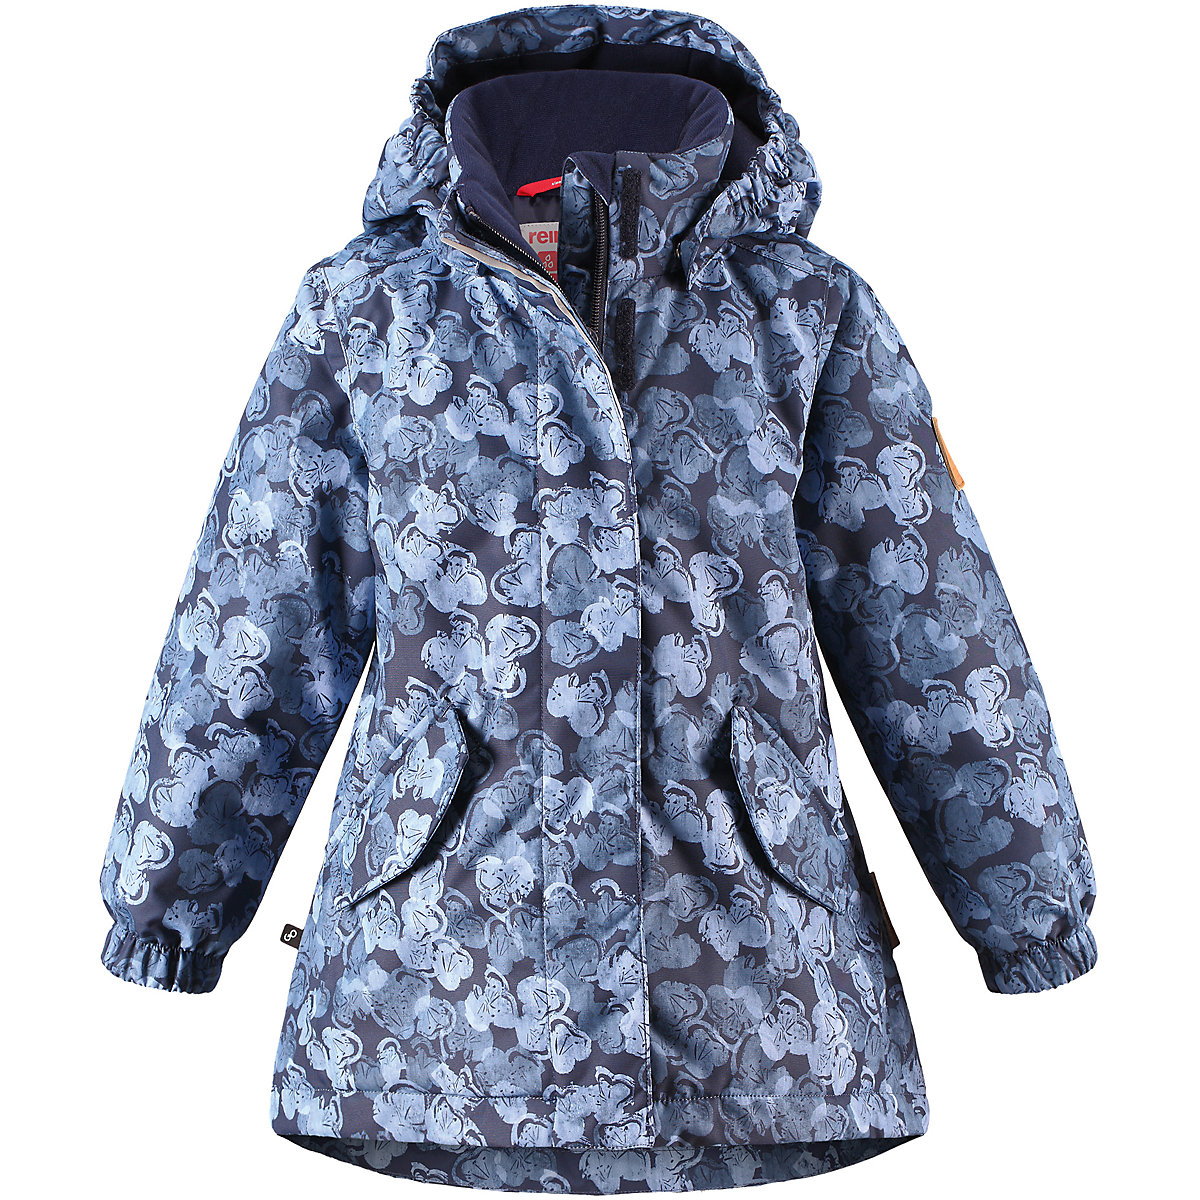 REIMA Jackets 8688911 For girls Polyester  winter fur baby clothing girl Jacket winter jacket men casual male coat warm men zipper outwear duck down jacket middle long mens parka with fur hood thick jackets